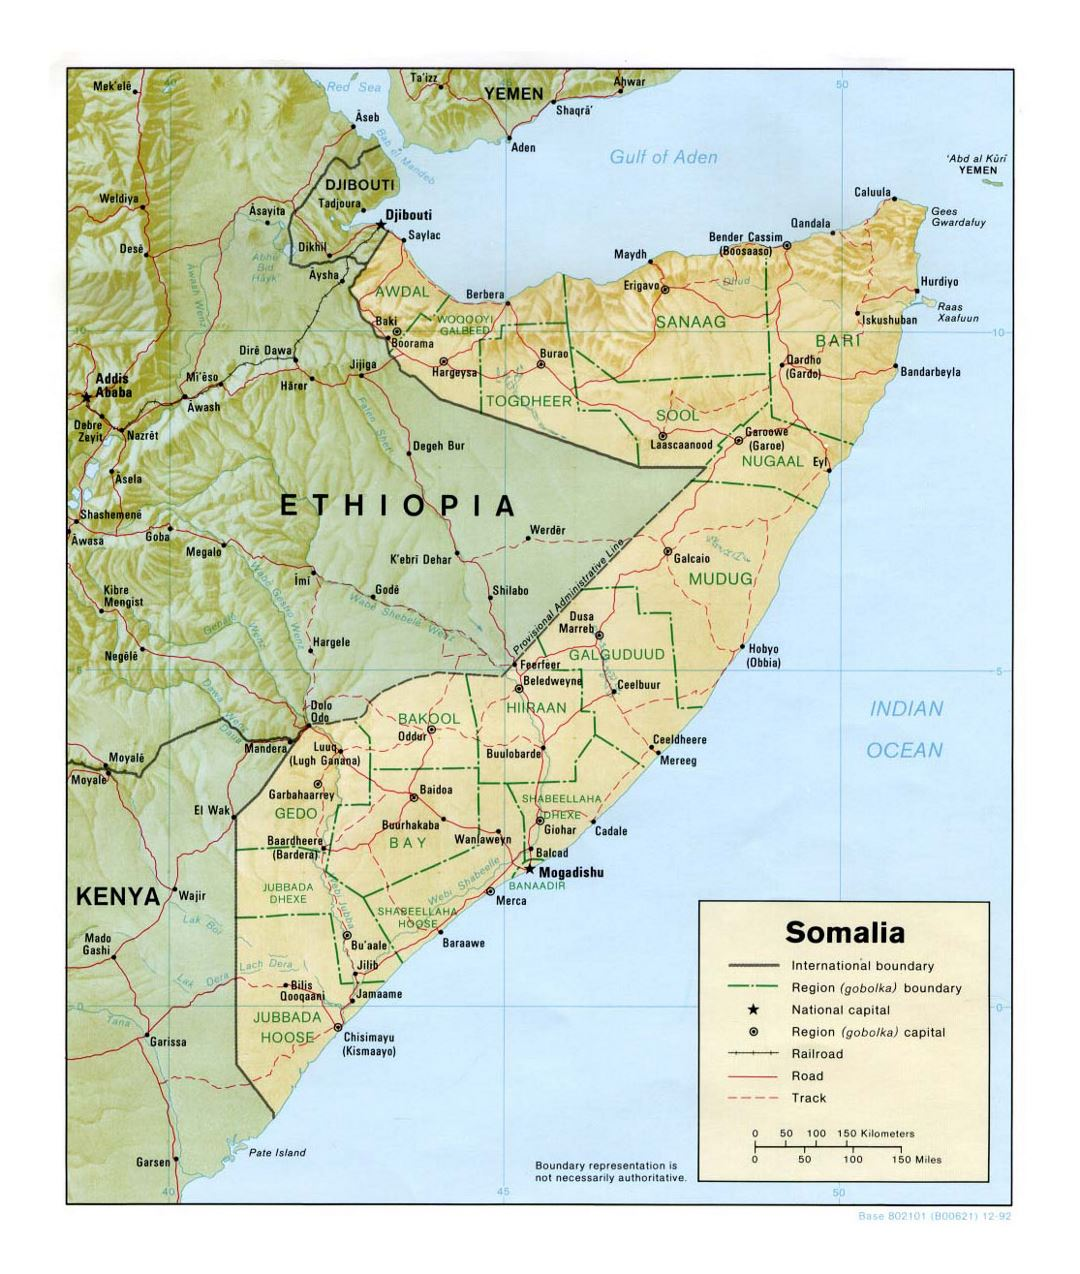 Detailed political and administrative map of Somalia with relief, roads, railroads and major cities - 1992